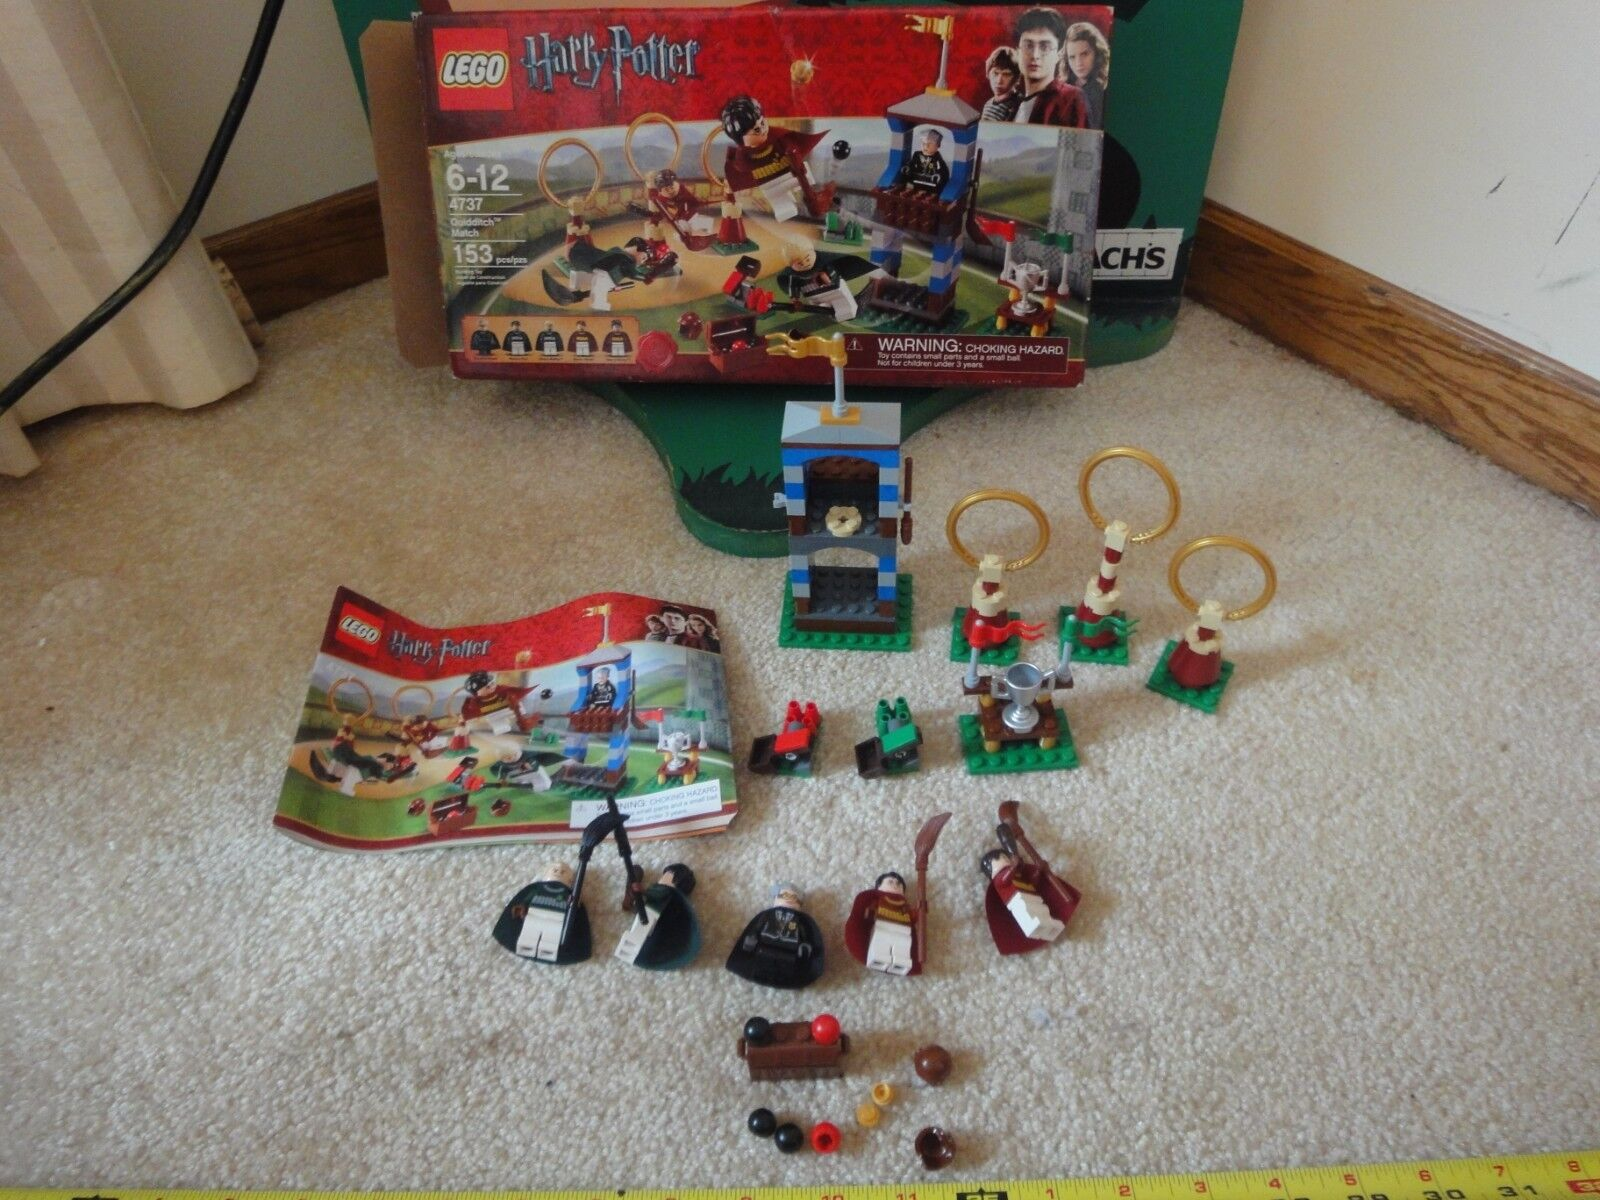 Lego Harry Potter 4737 Quidditch Match Set. Complete with minifigs  Nice